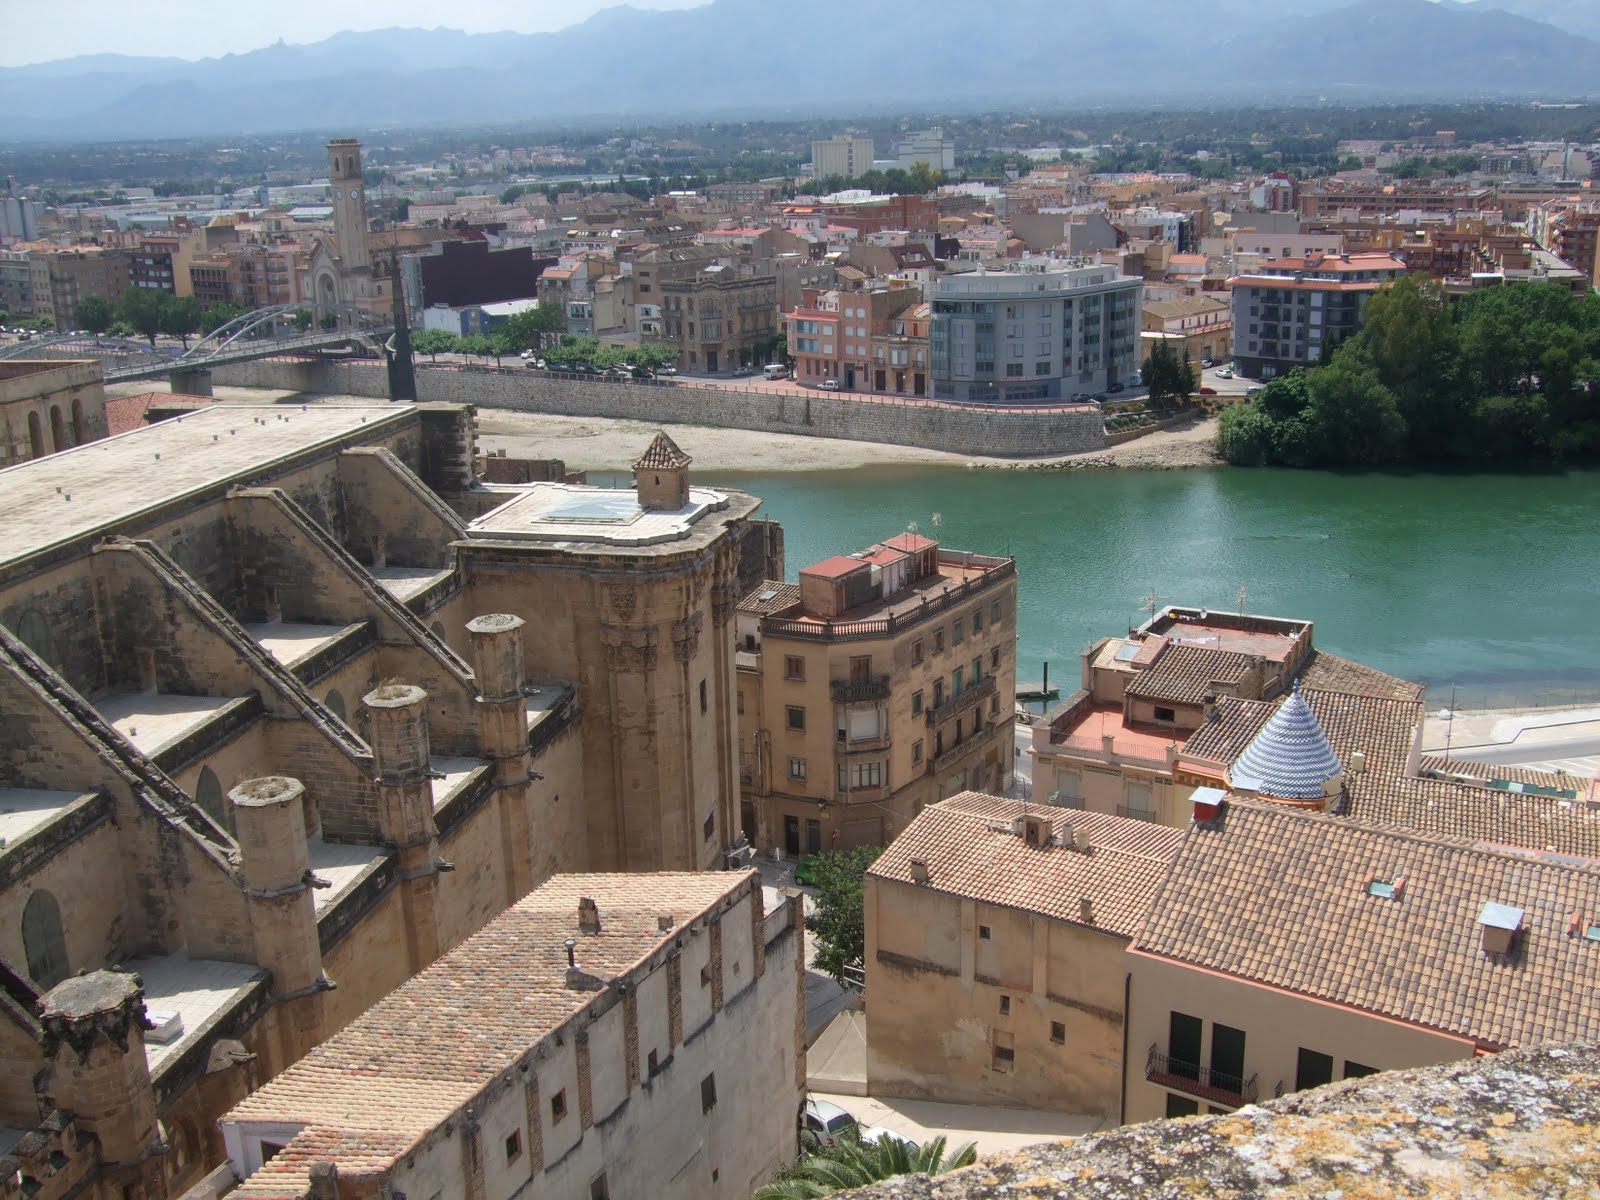 Tortosa Spain  city photos gallery : FRANCE AND SPAIN TRAVEL PHOTOS: TORTOSA SPAIN PICTURES